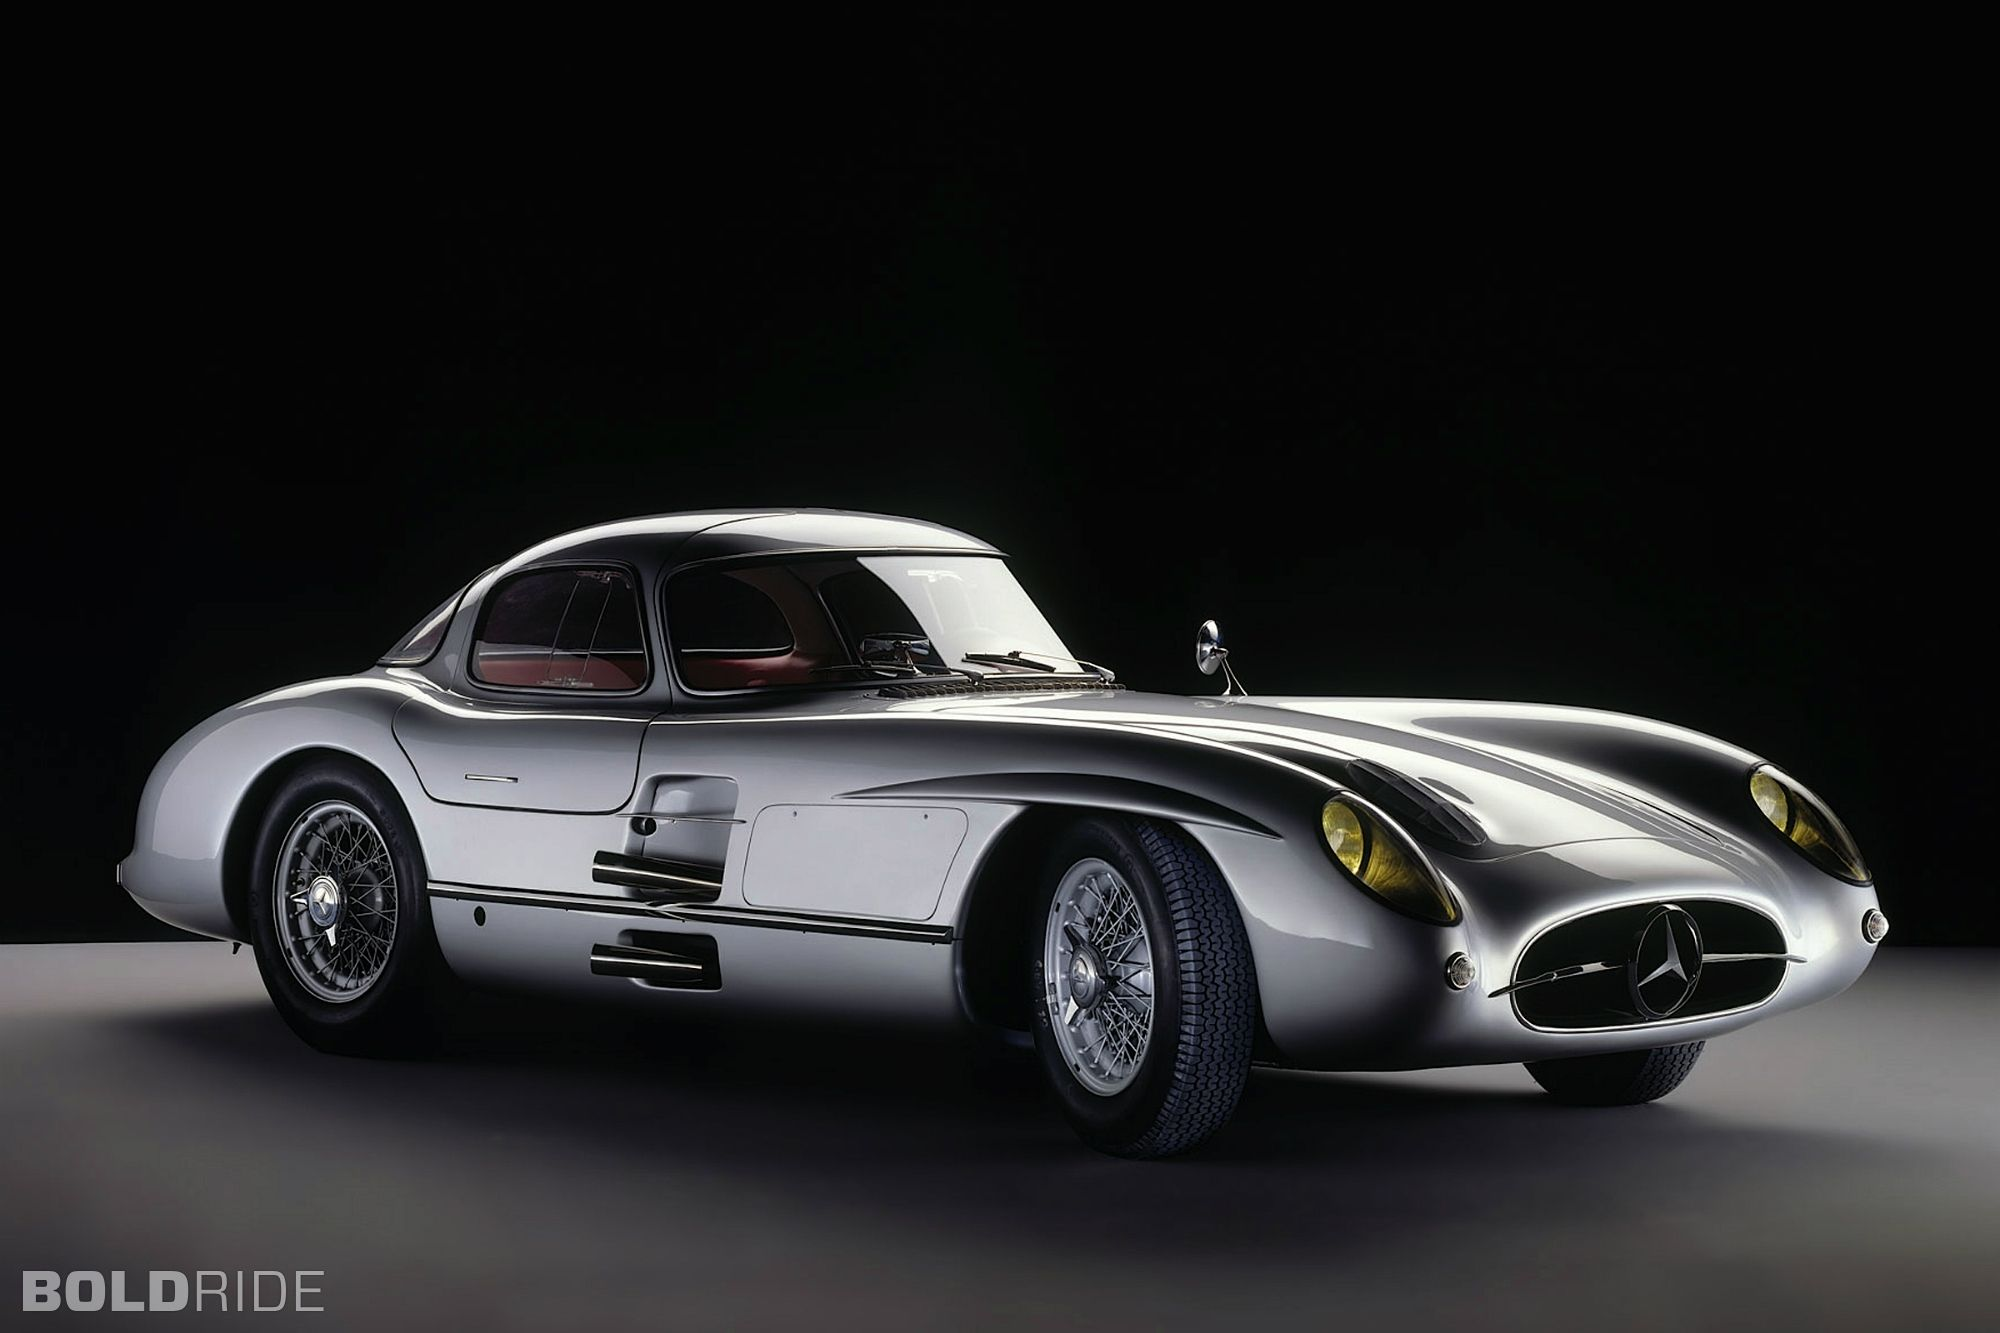 Mercedes Benz 300 Slr Uhlenhaut Coupe With Images Mercedes